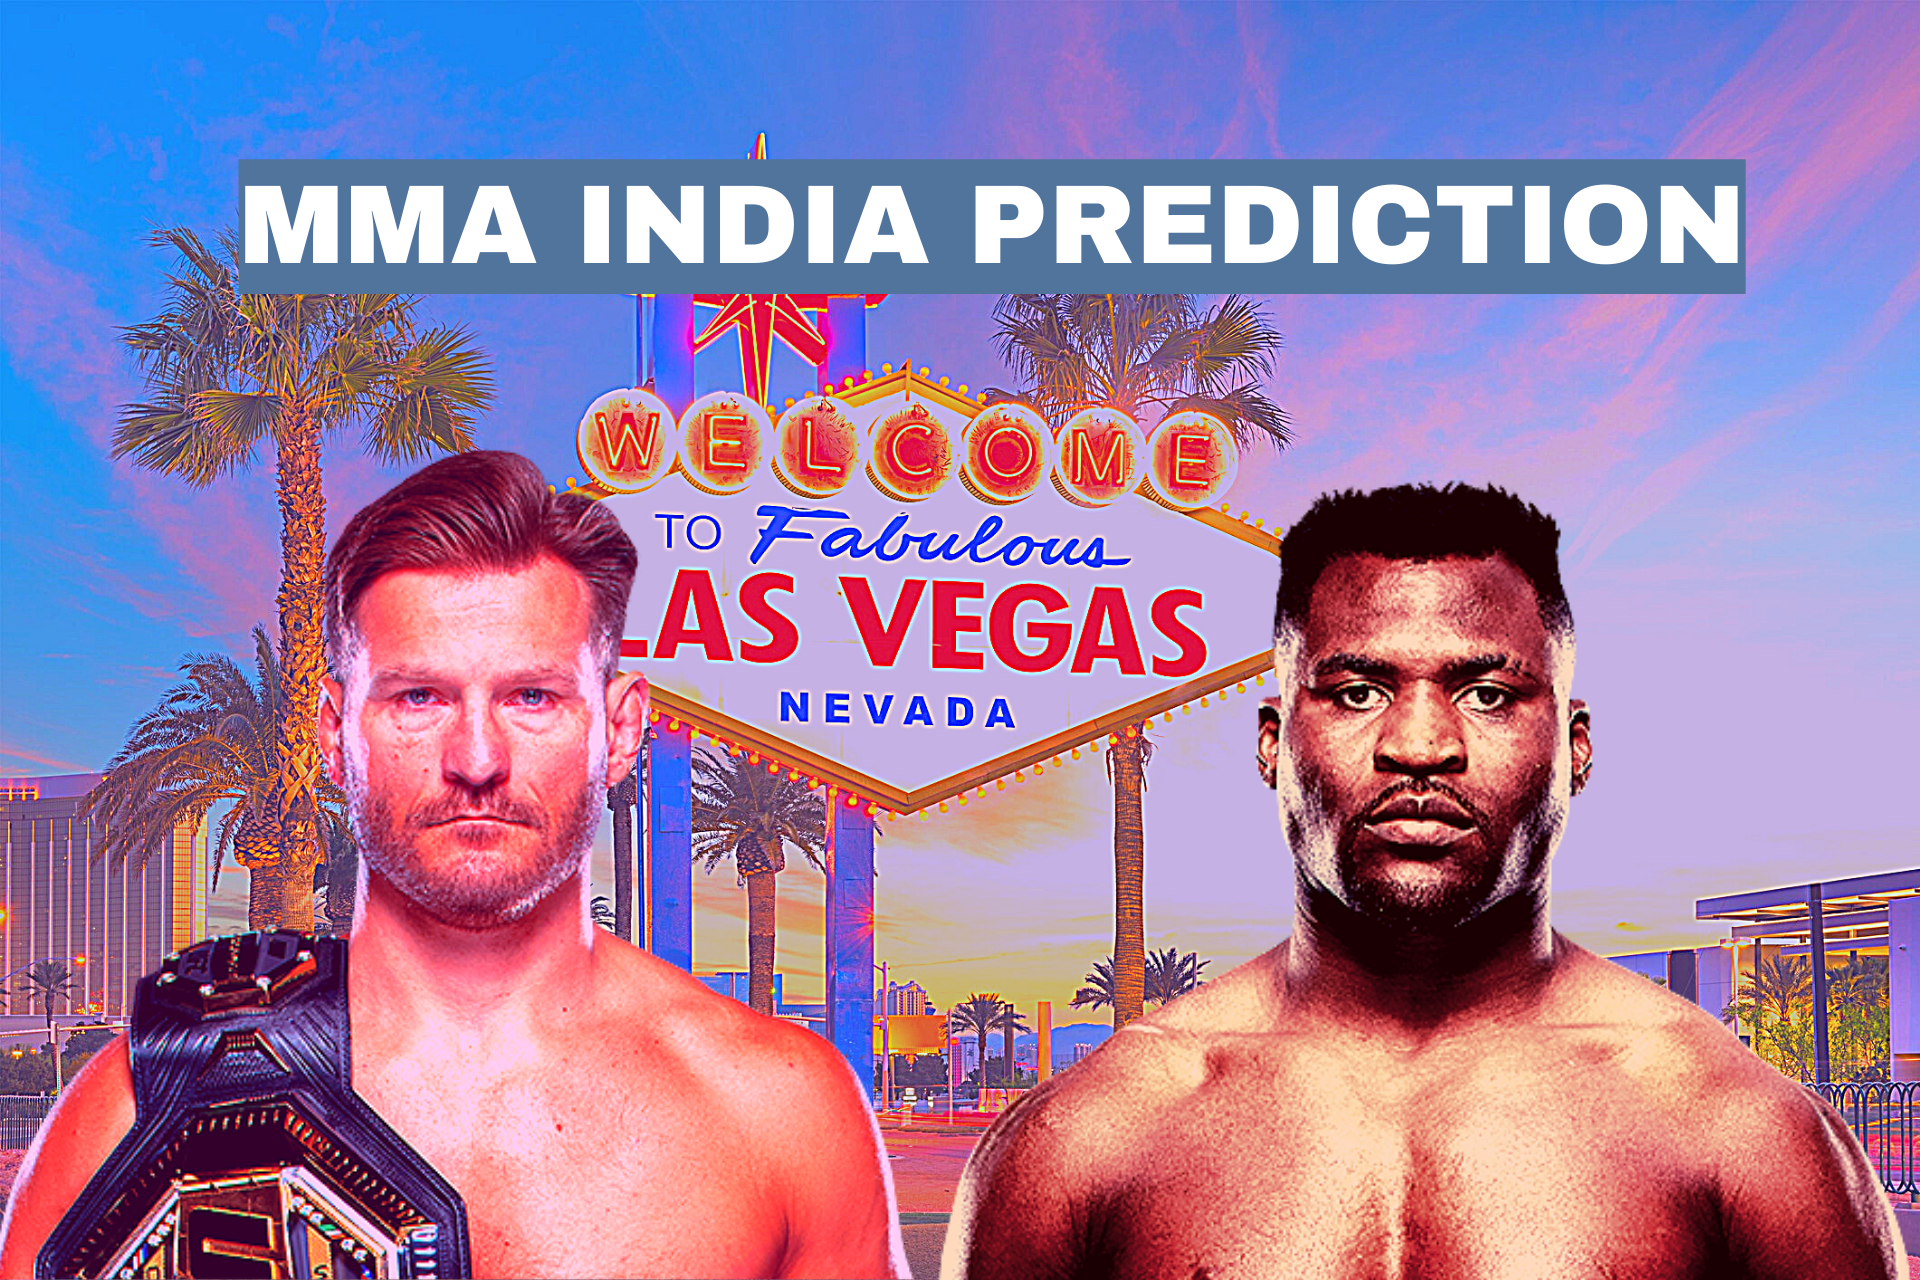 Francis Ngannou vs Stipe Miocio odds and prediction